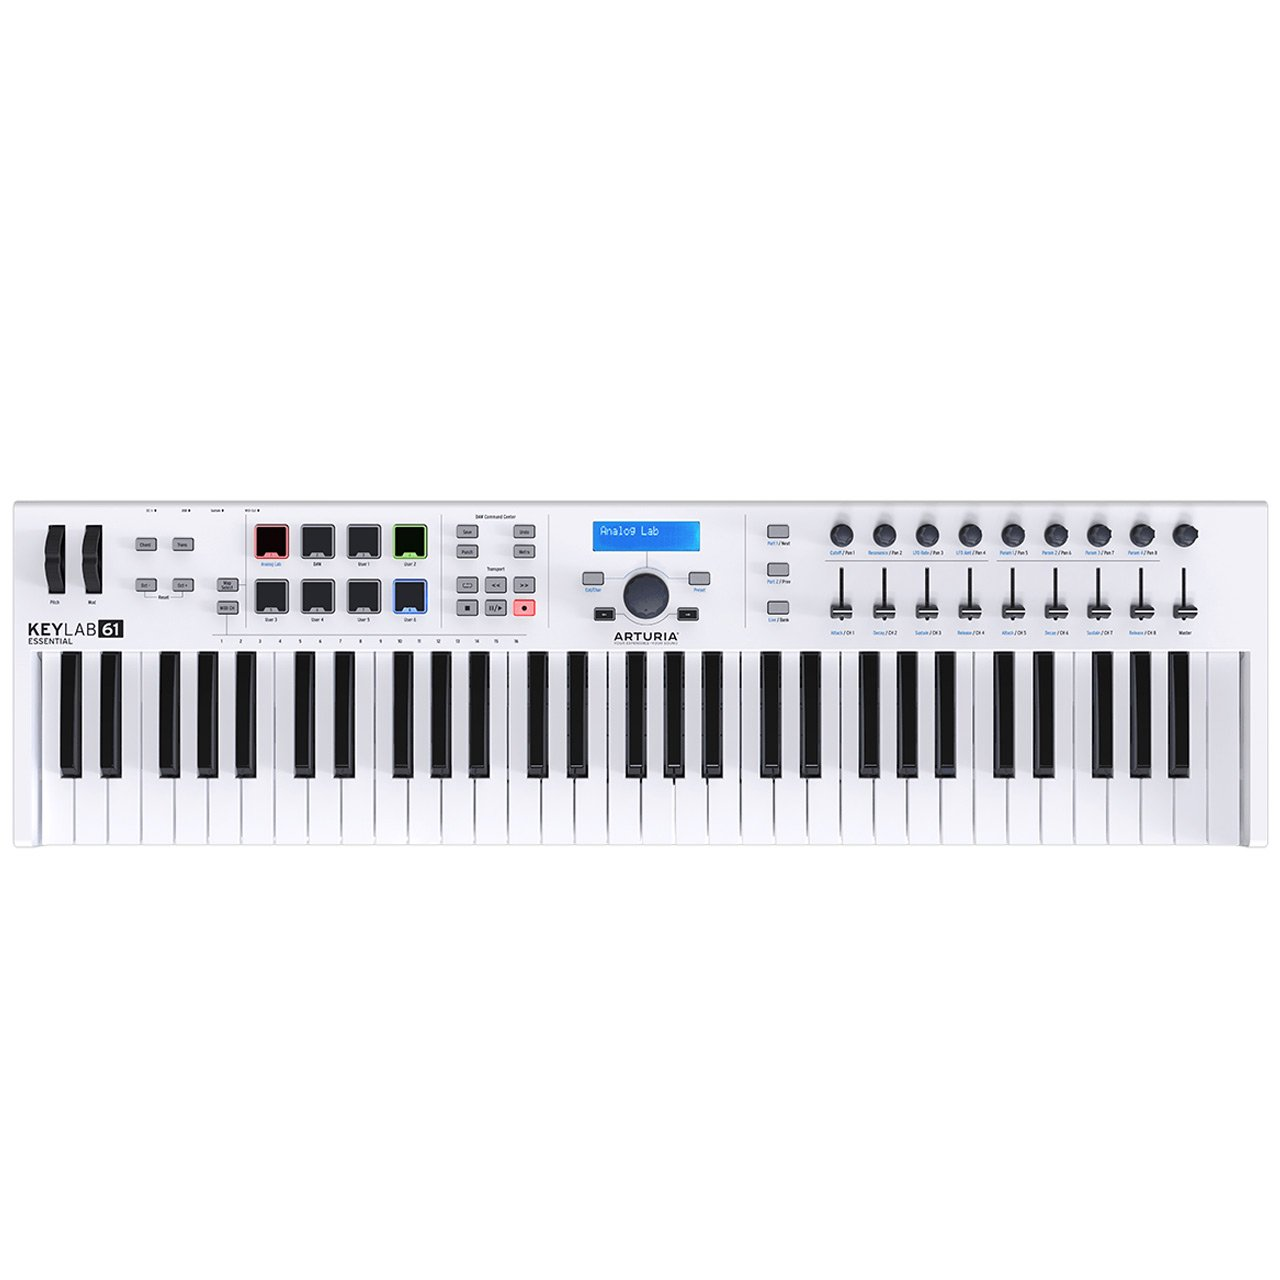 Controller Keyboards - Arturia KeyLab Essential 61 Semi-Weighted USB MIDI Controller Keyboard